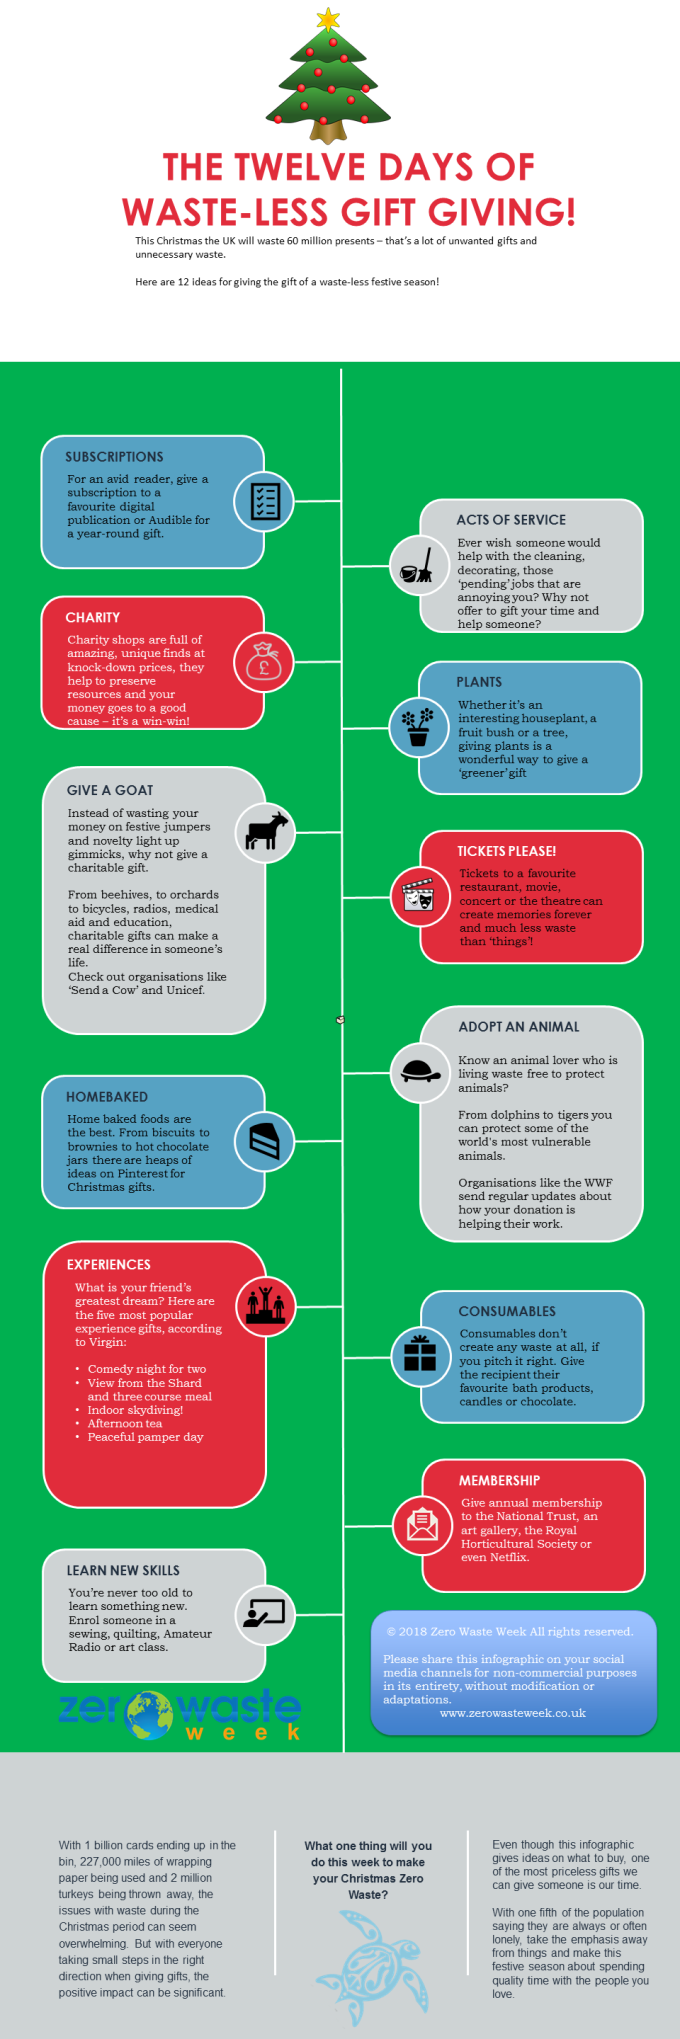 how-to-reduce-waste-this-christmas-infographic.png